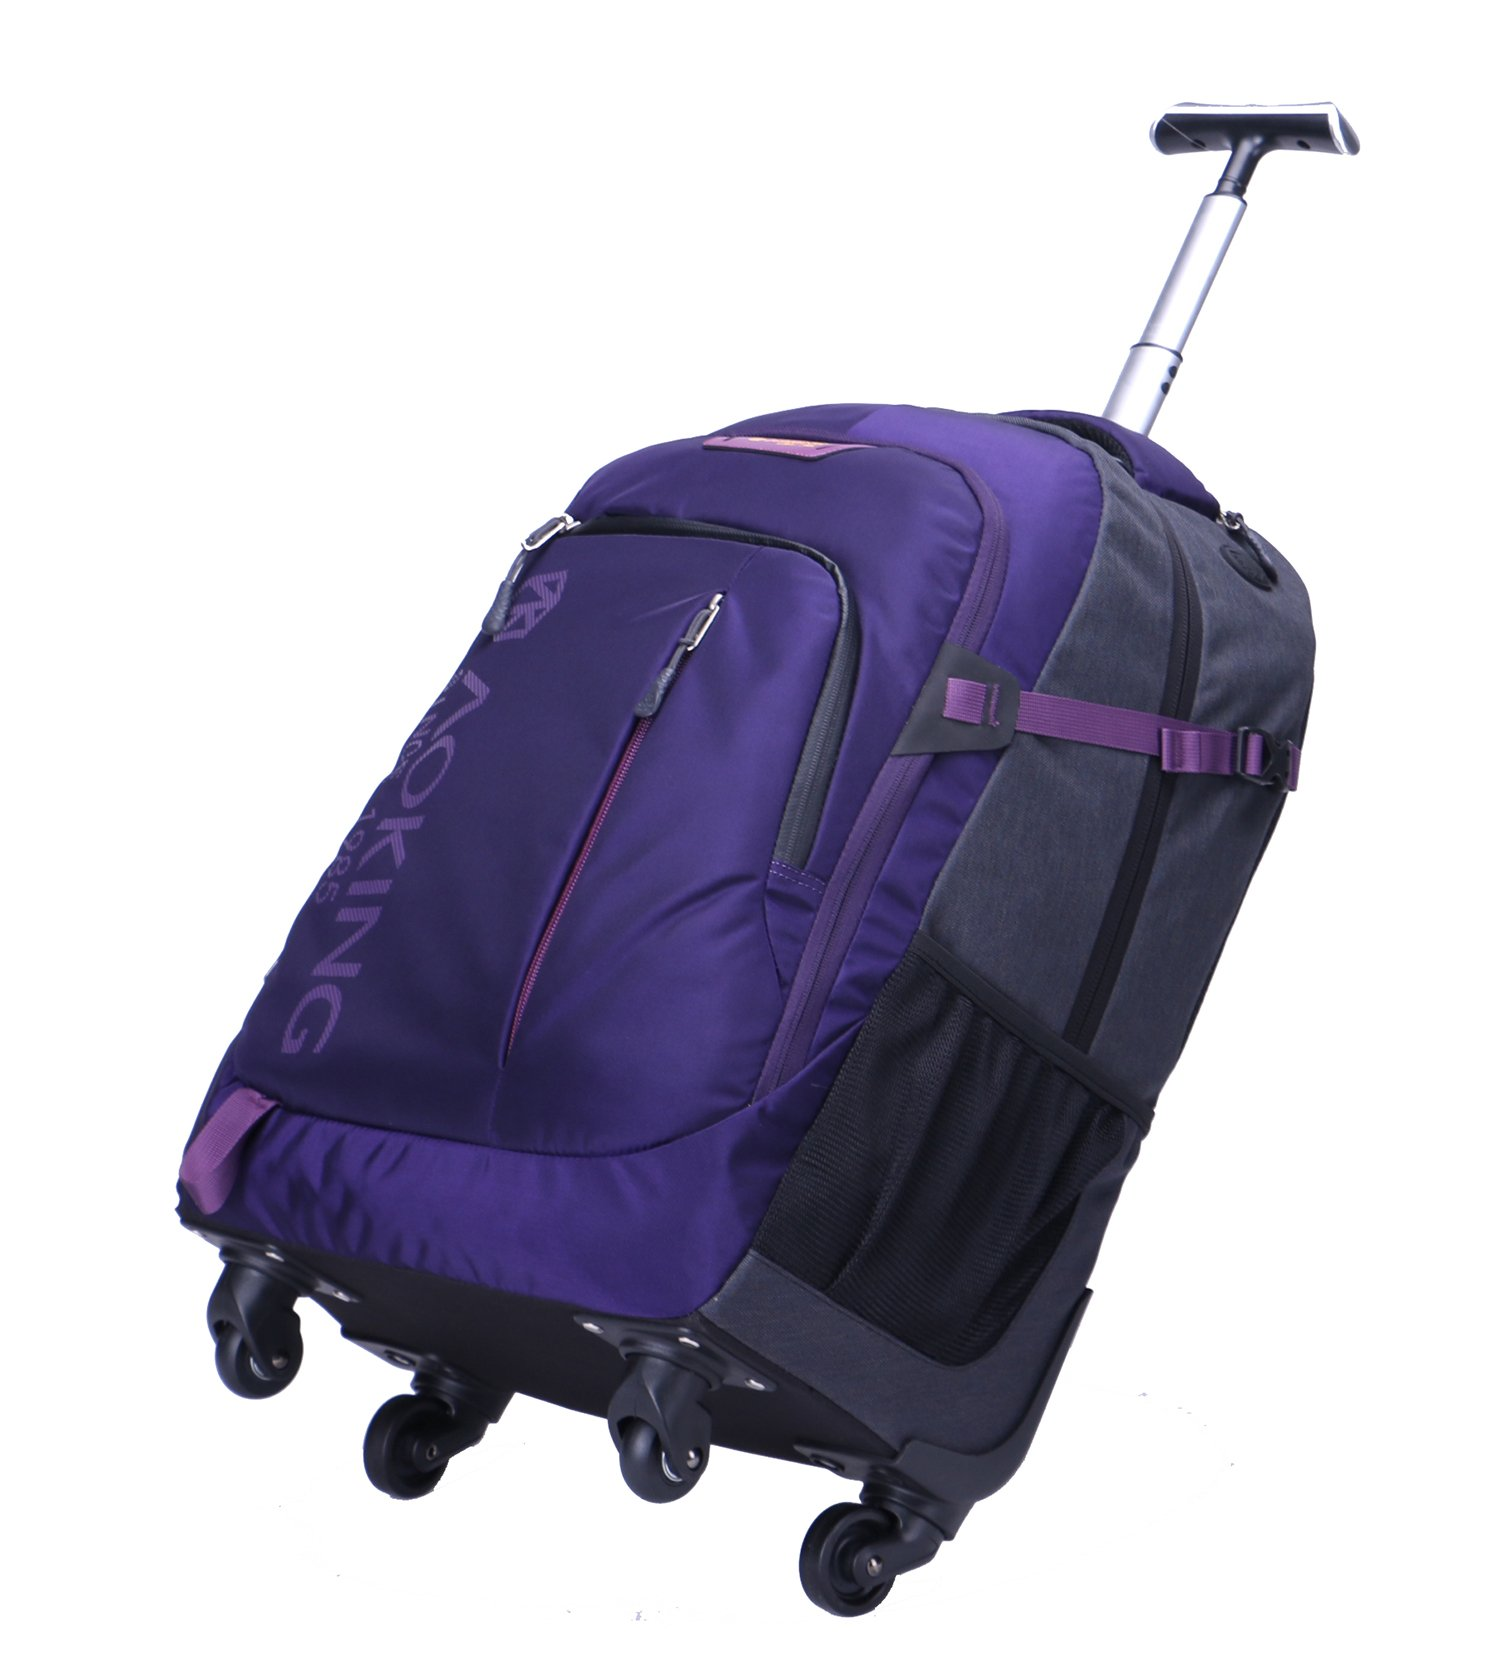 AOKING 20/22 Inch Water Resistant Travel School Business Rolling Wheeled Backpack with Laptop Compartment (Purple, 20 Inch) by JOLLYCHIC (Image #5)